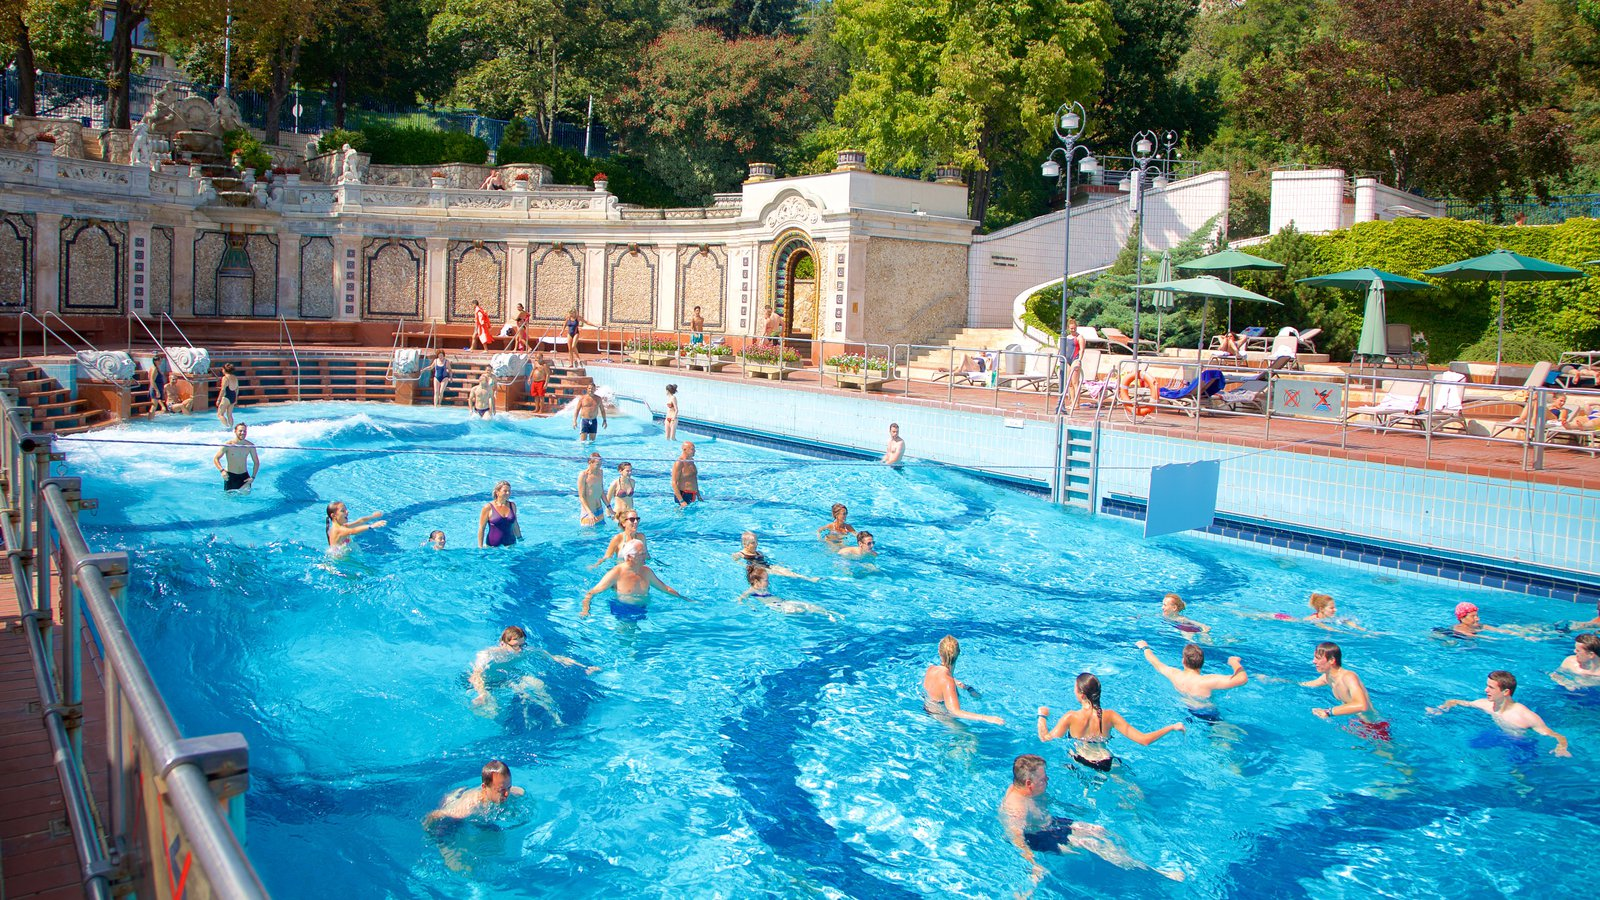 Gellert Thermal Baths And Swimming Pool Which Includes A Day Spa As Well